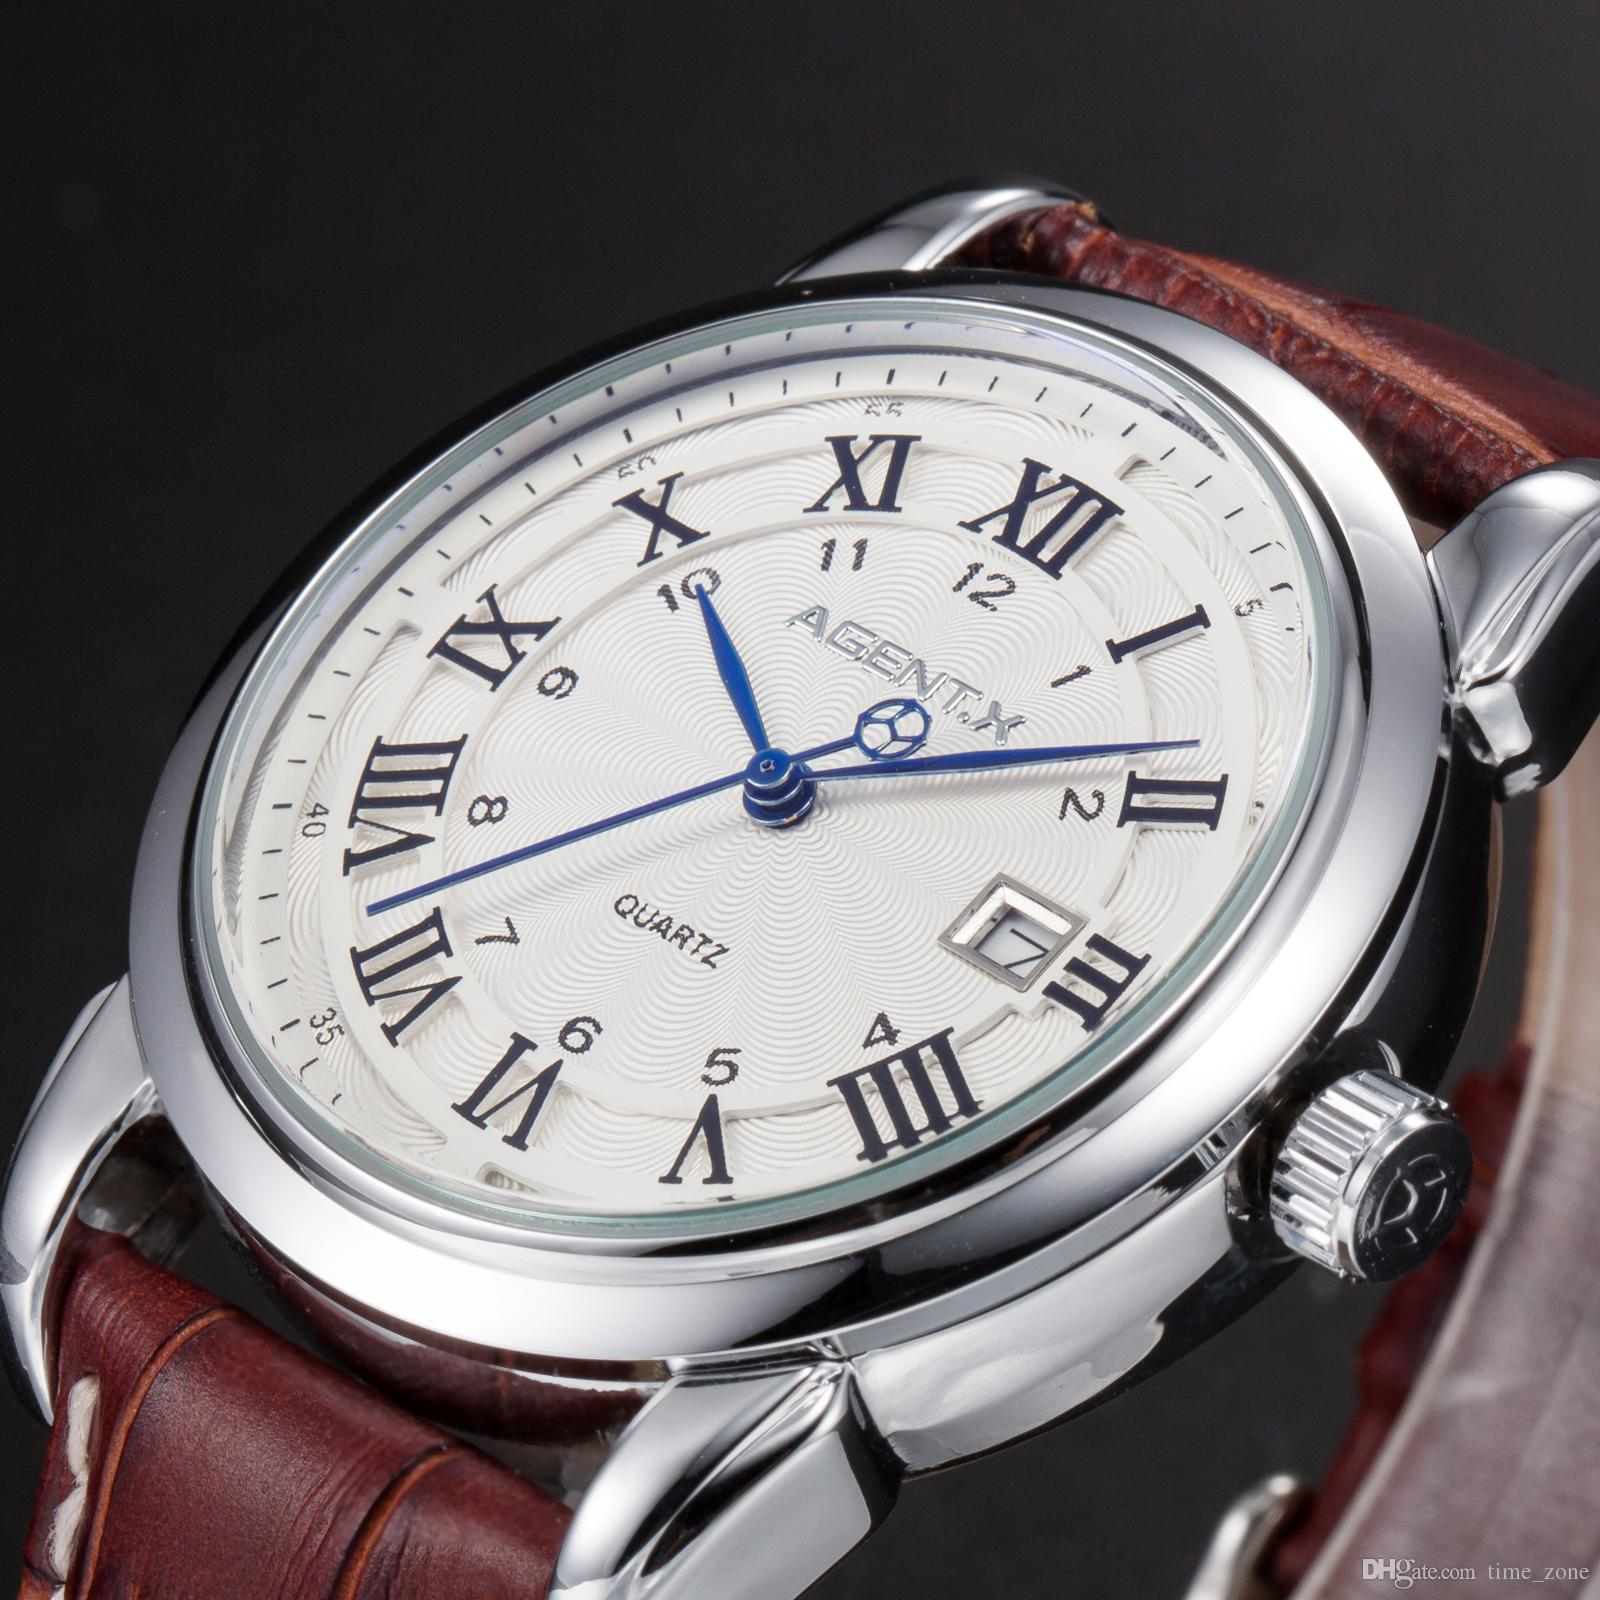 kickstarter hms value watches inspired baltic style vintage proposition chronograph